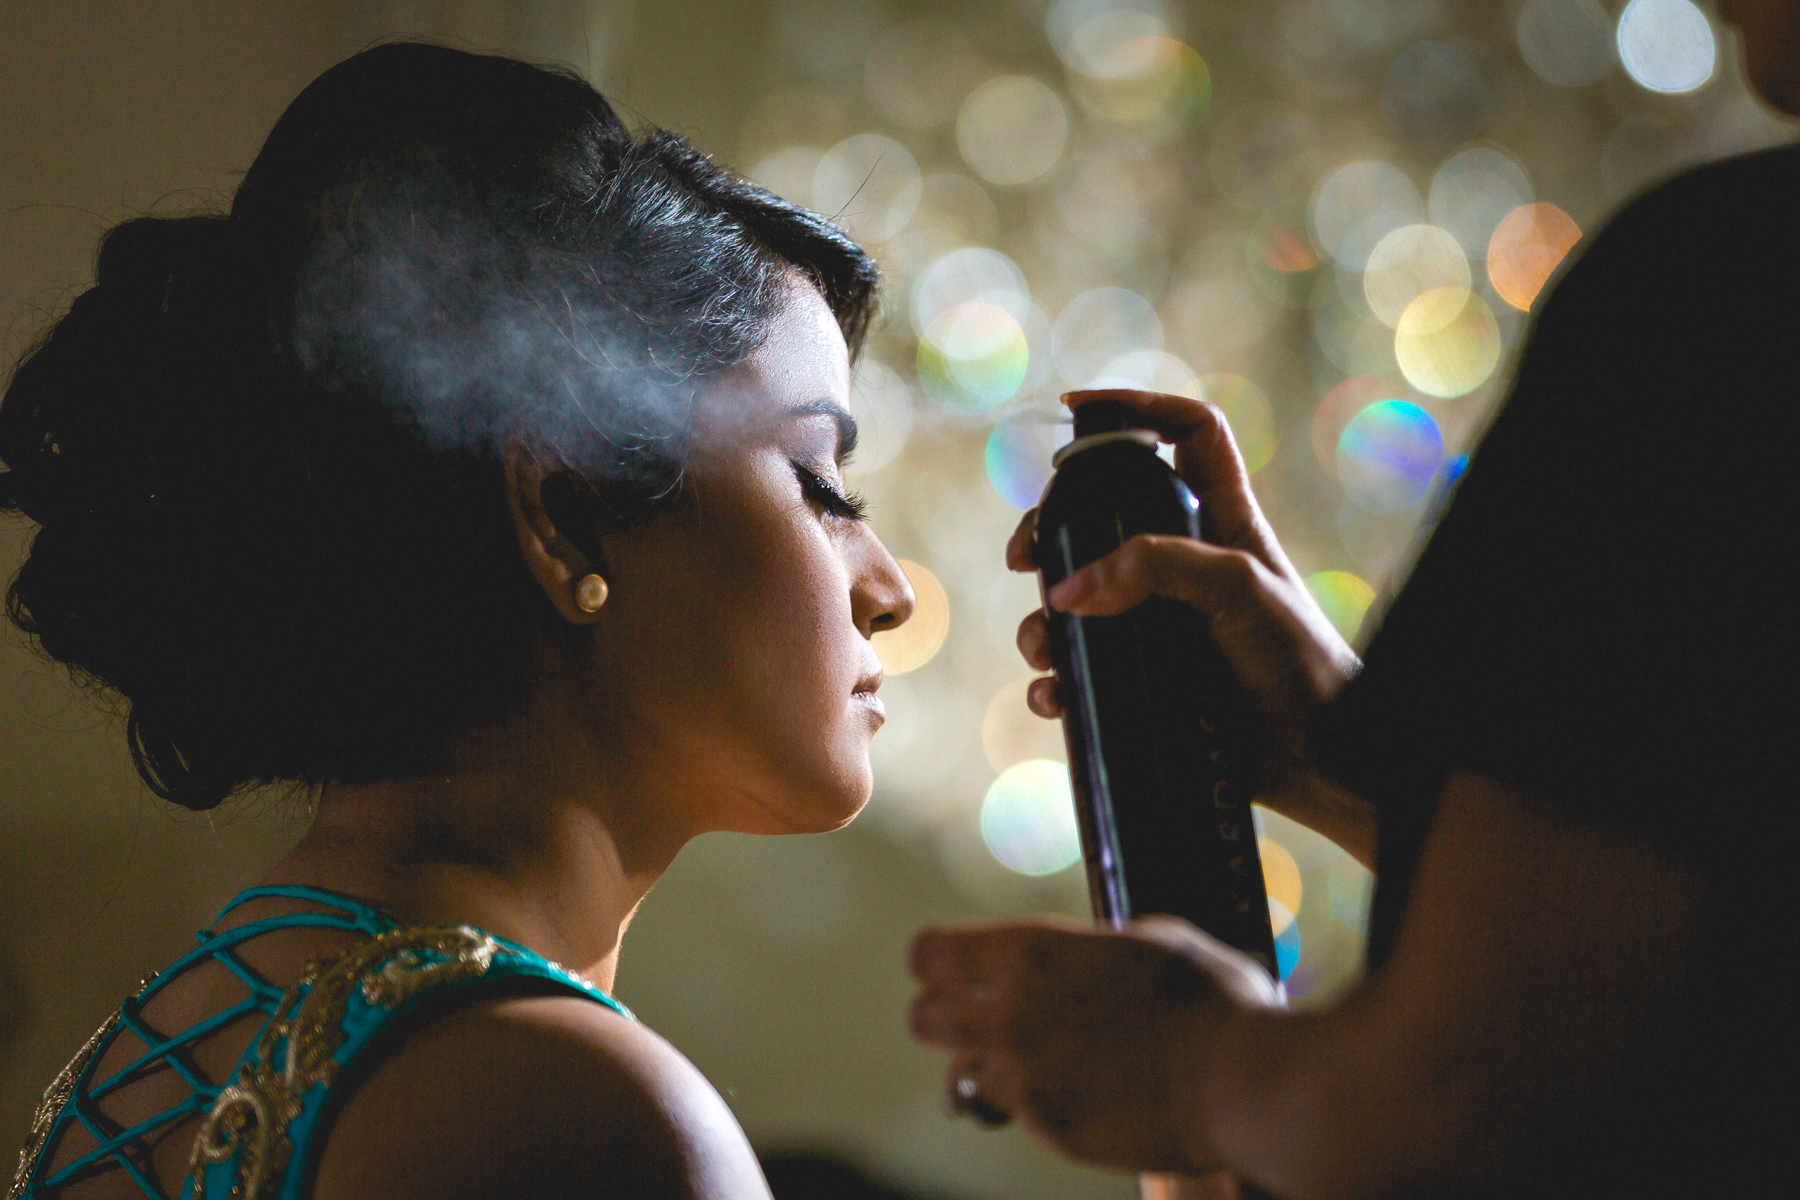 indian-south-asian-wedding-getting-ready-details-21.jpg